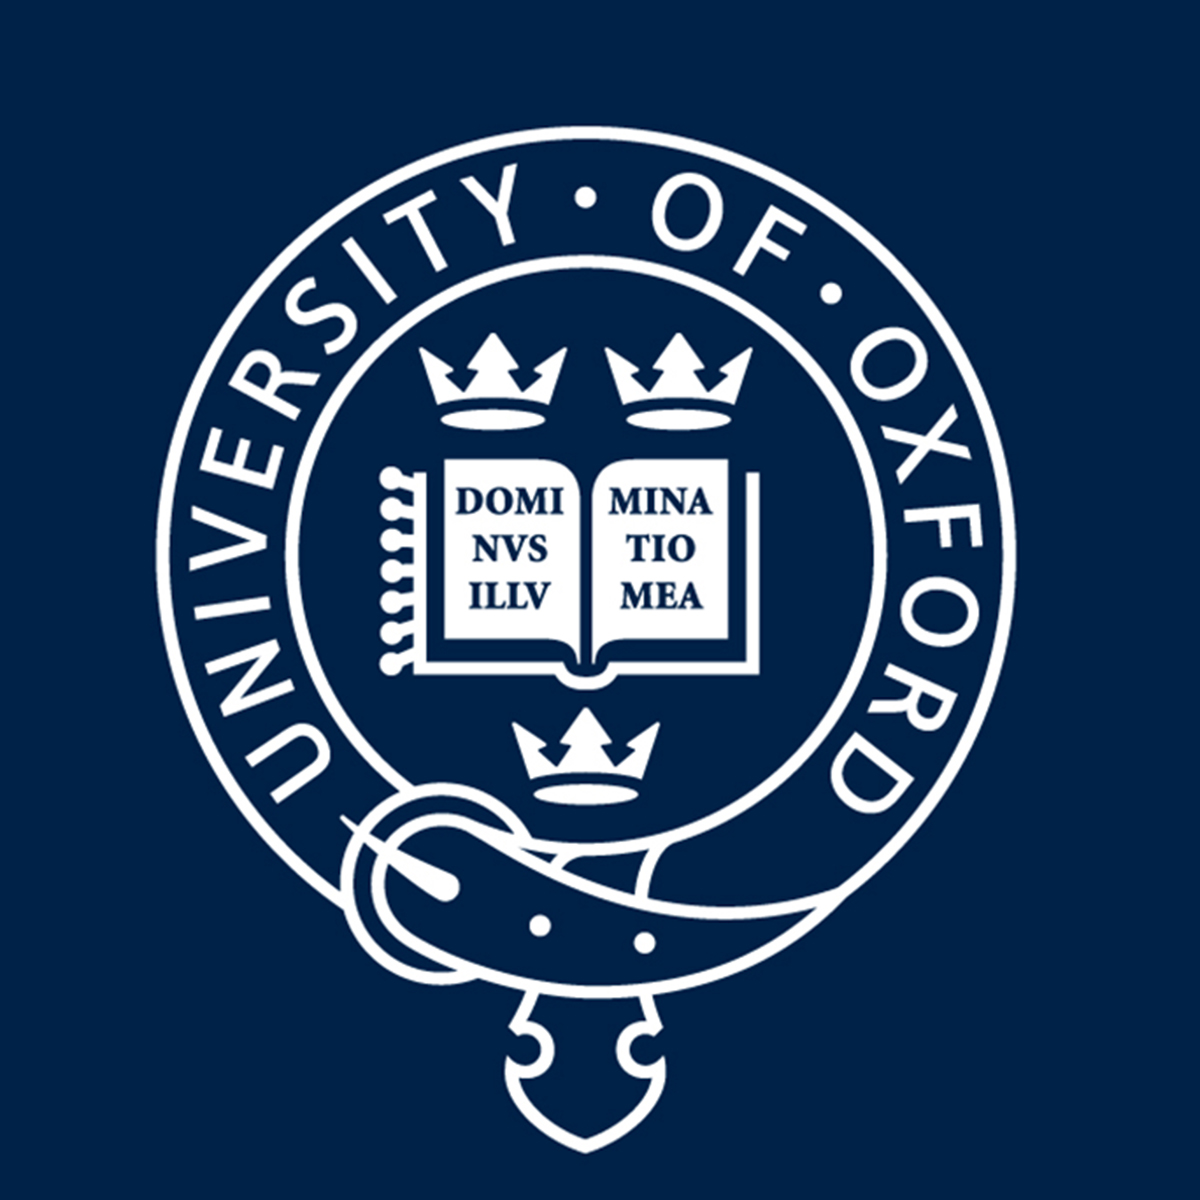 Oxford University's fundraising passes £2bn mark